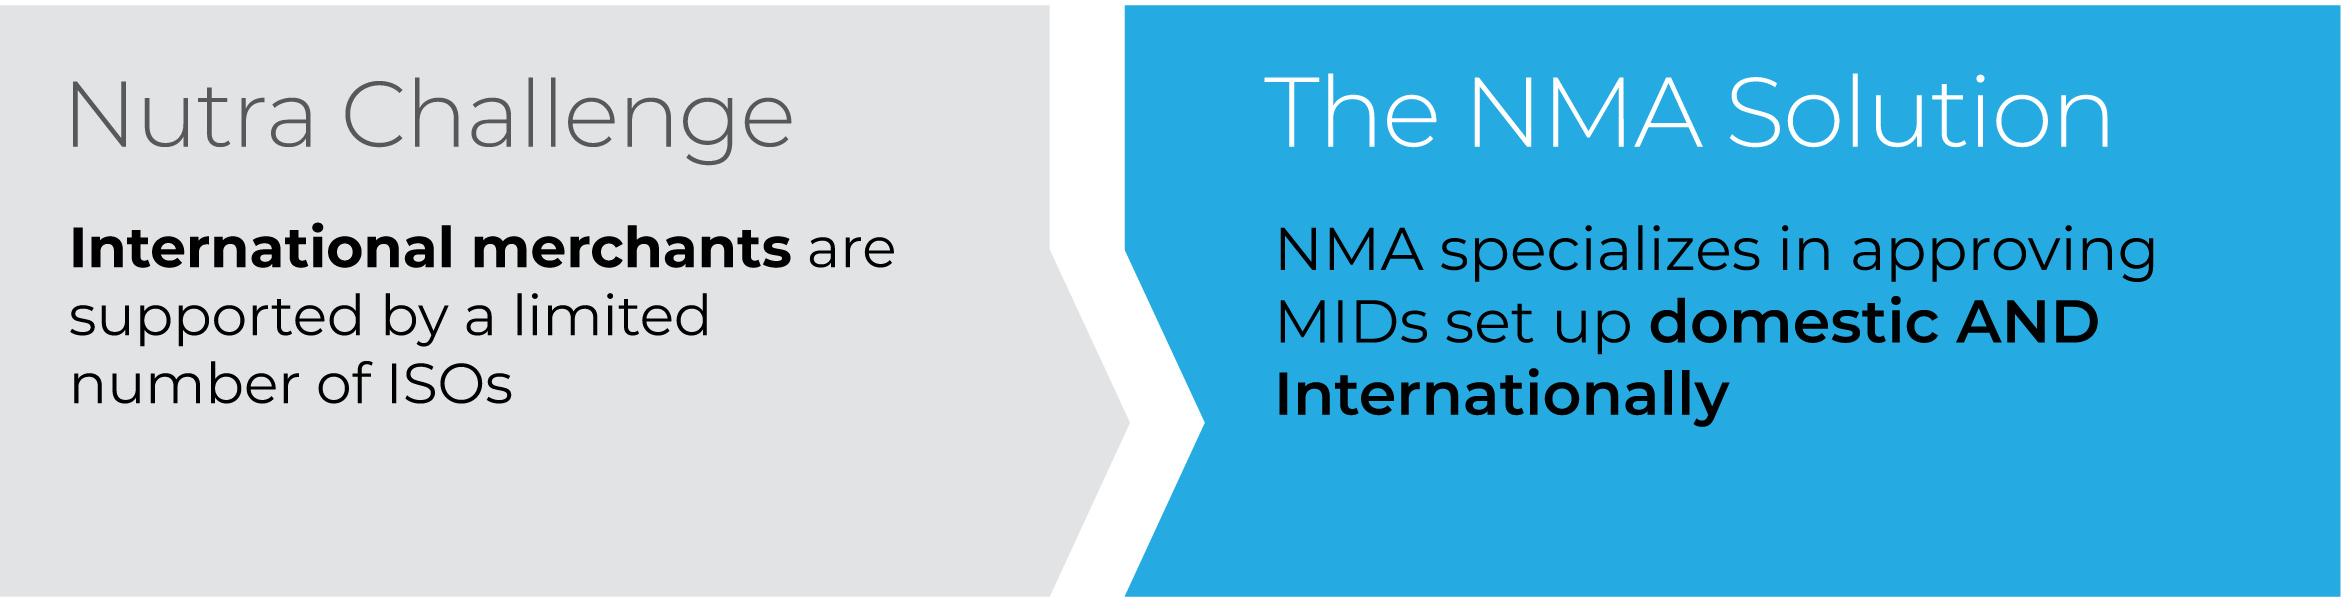 NMA specializes in approving MIDs set up domestic AND internationally